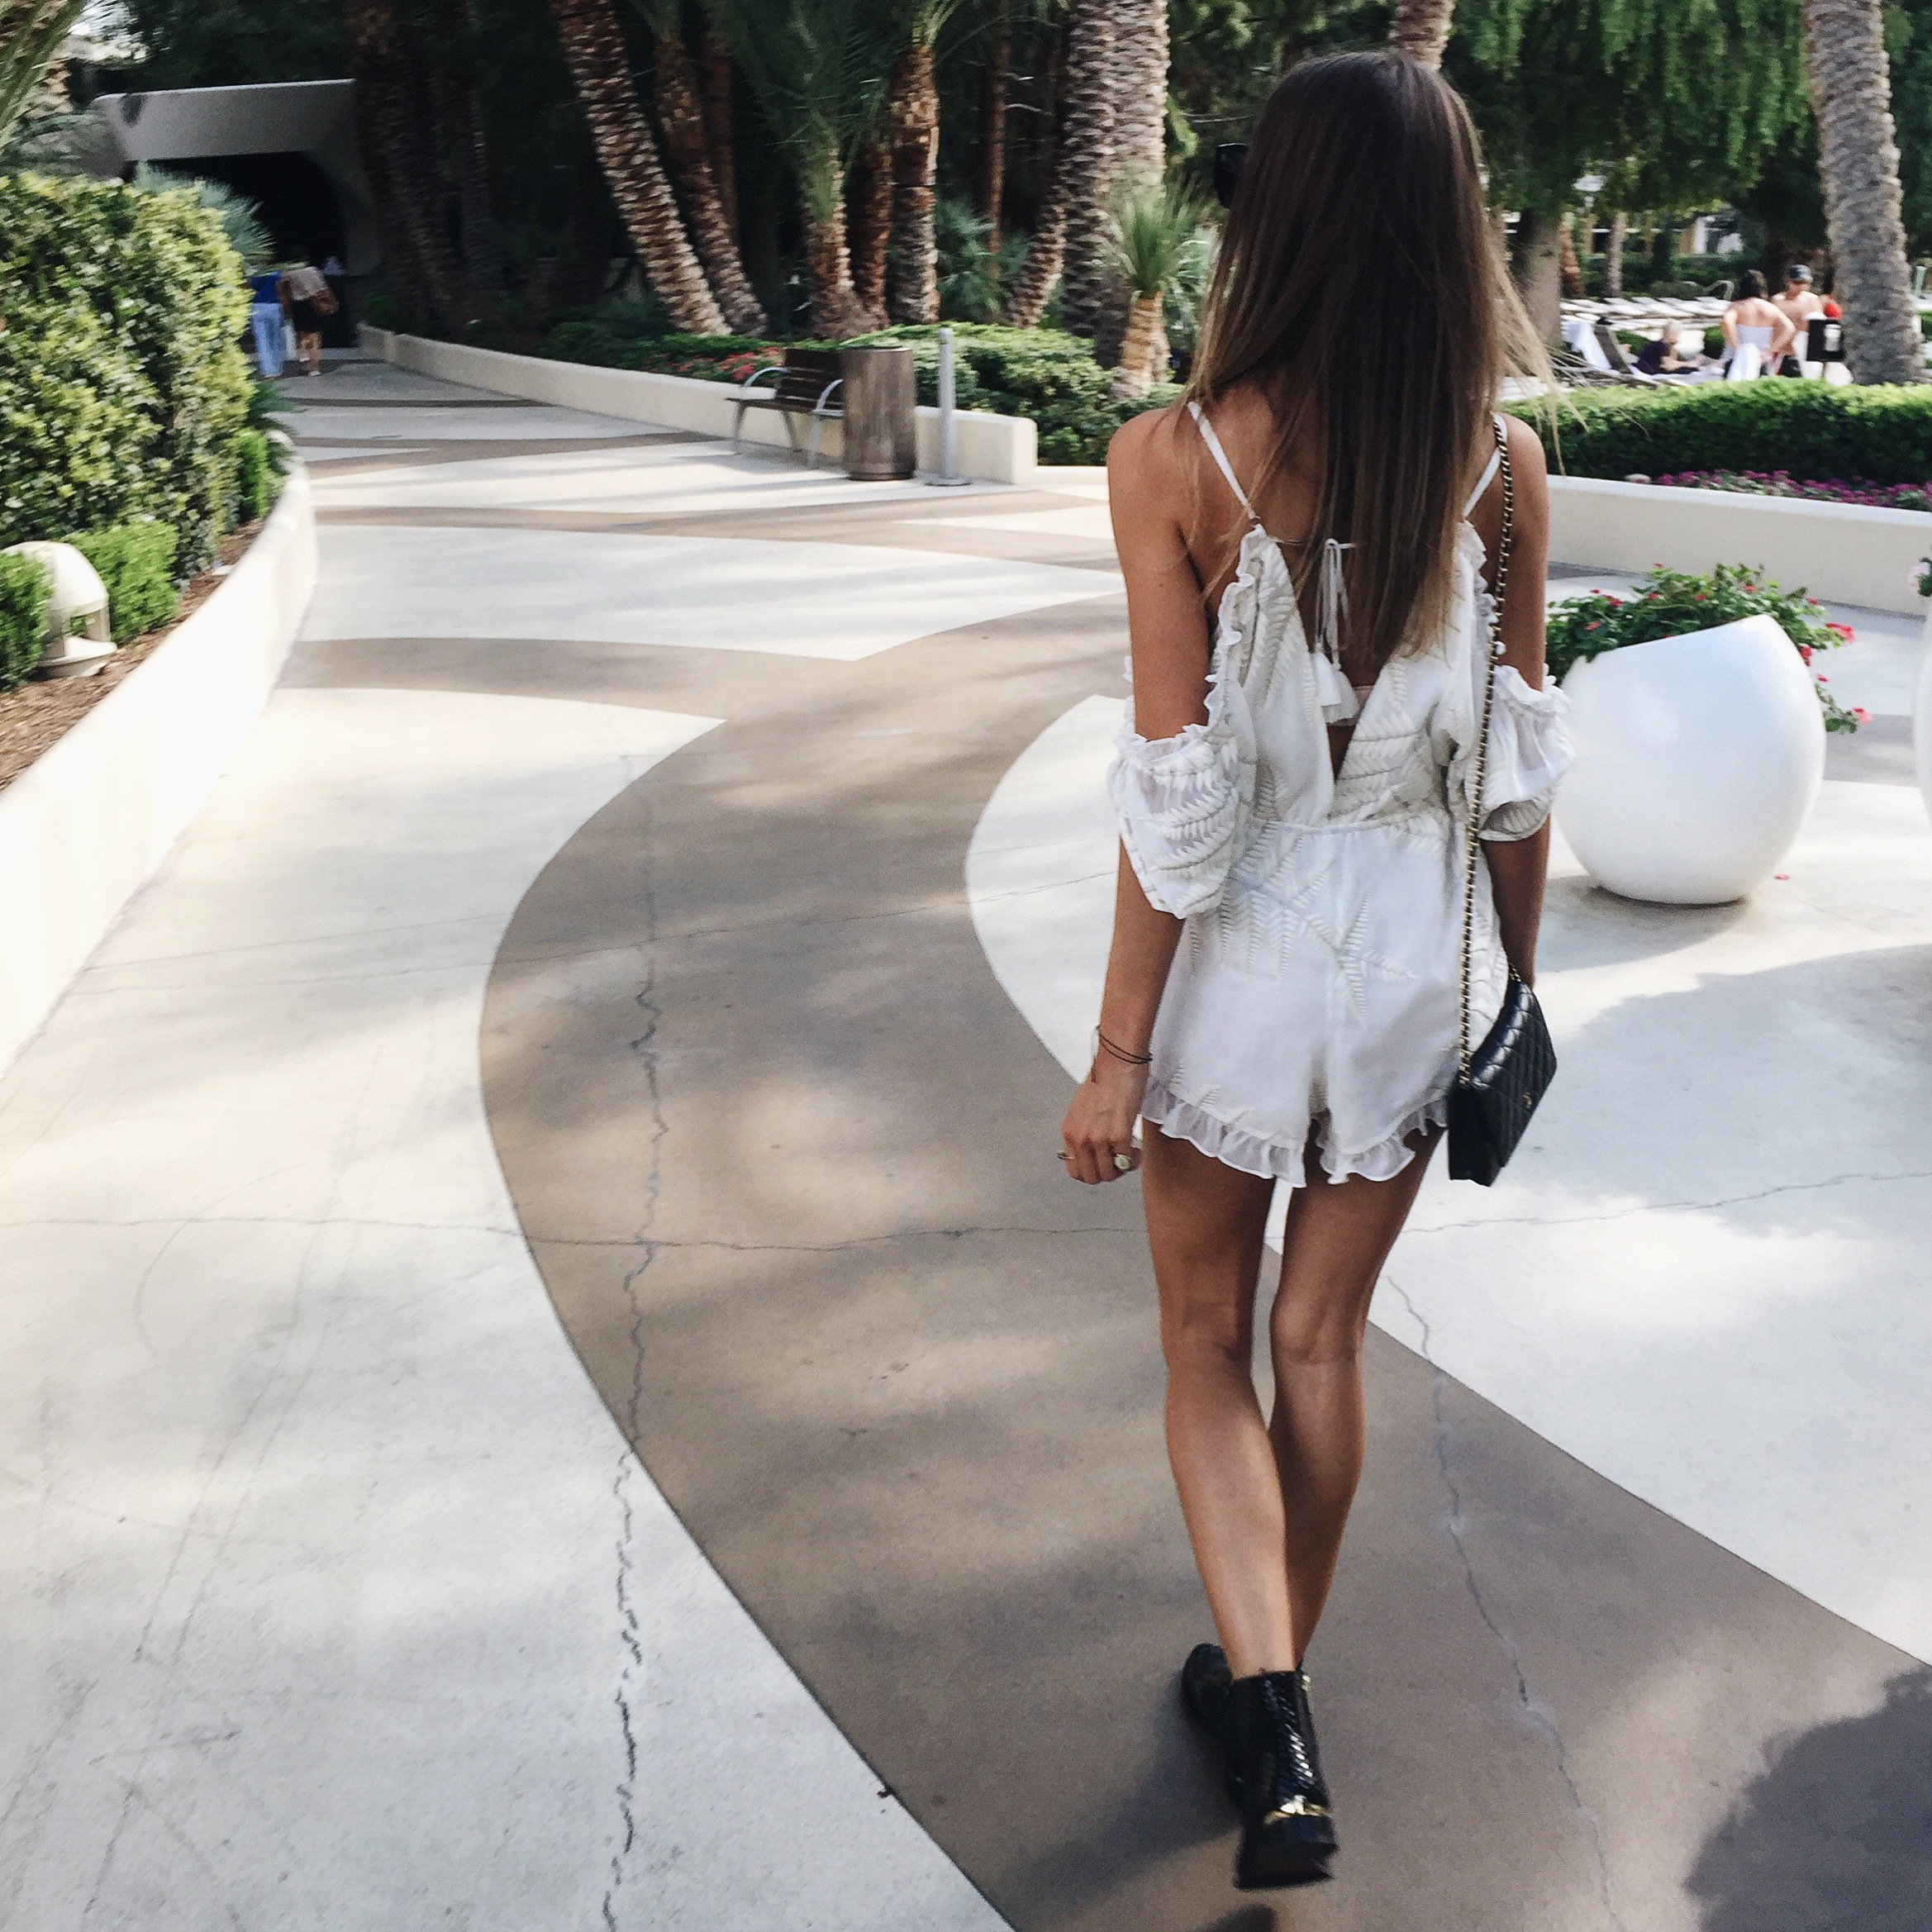 linda_tsetis_worlds_affair_las_vegas_playsuit_revolve_clothing